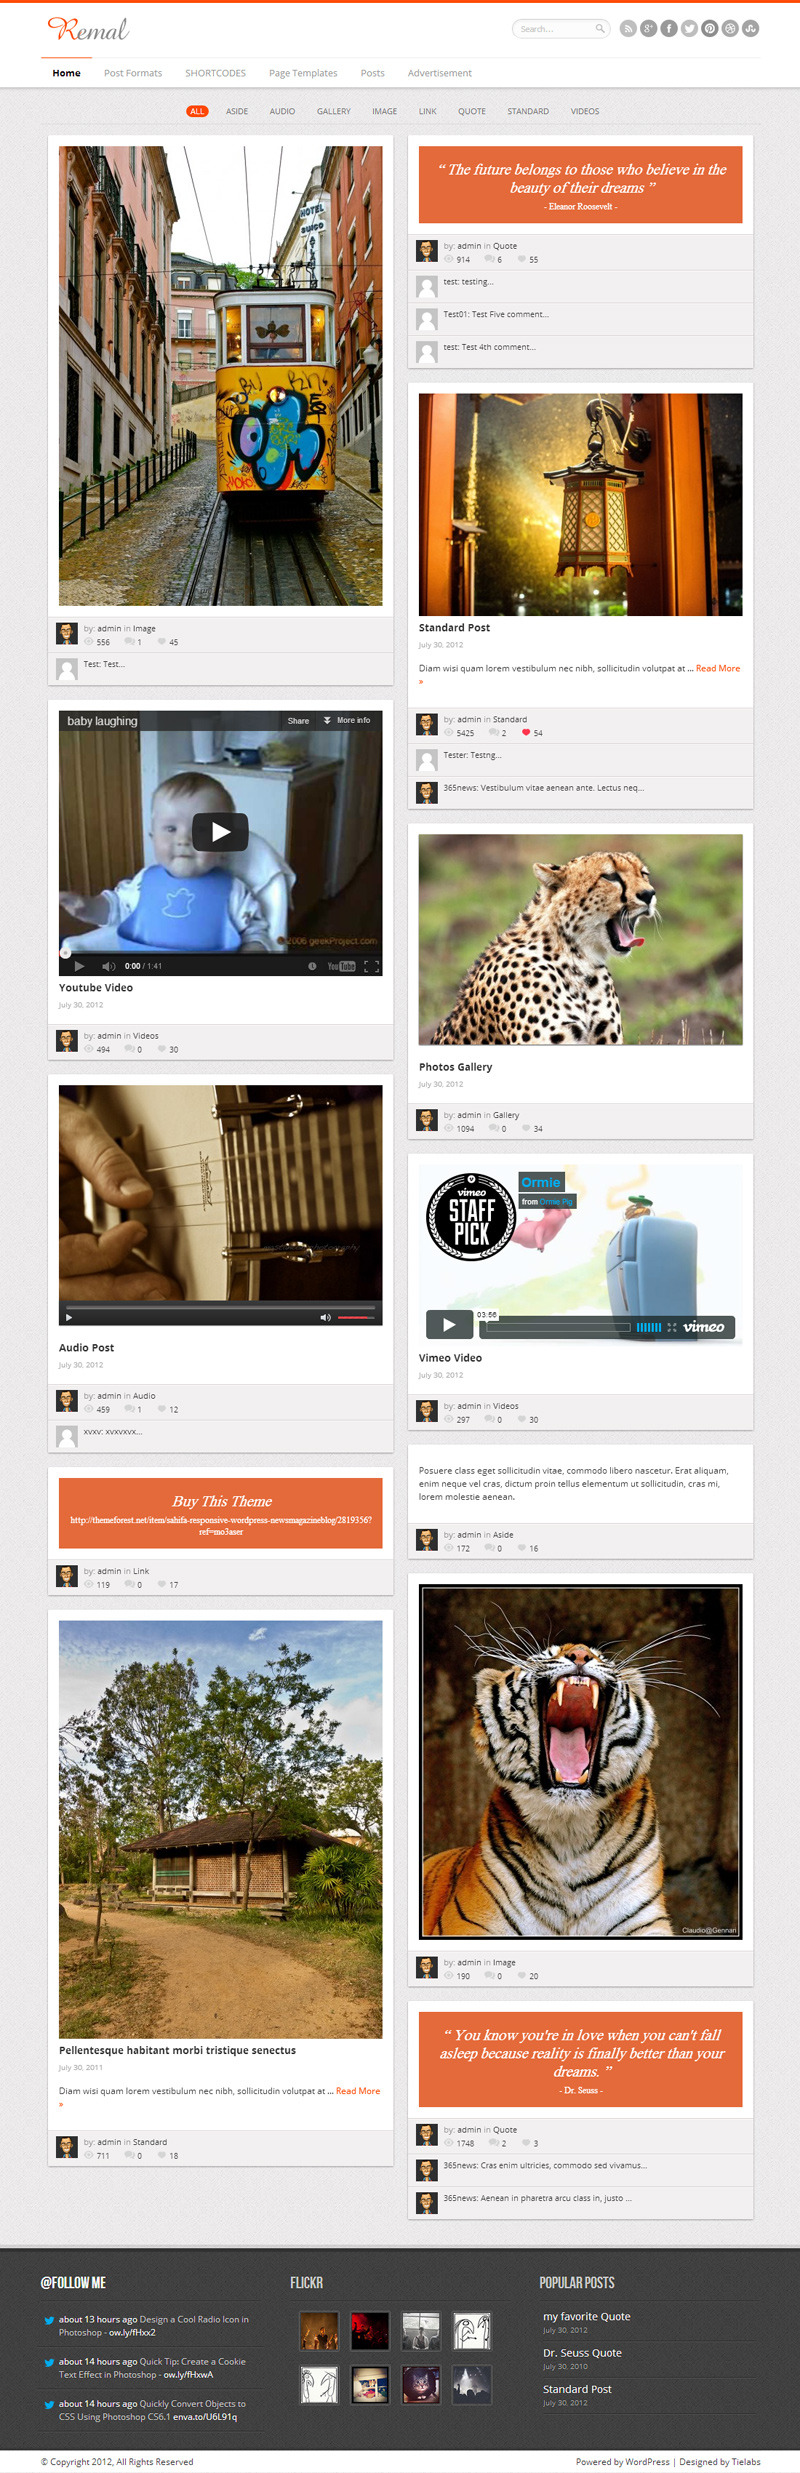 Remal - Responsive WordPress Blog Theme